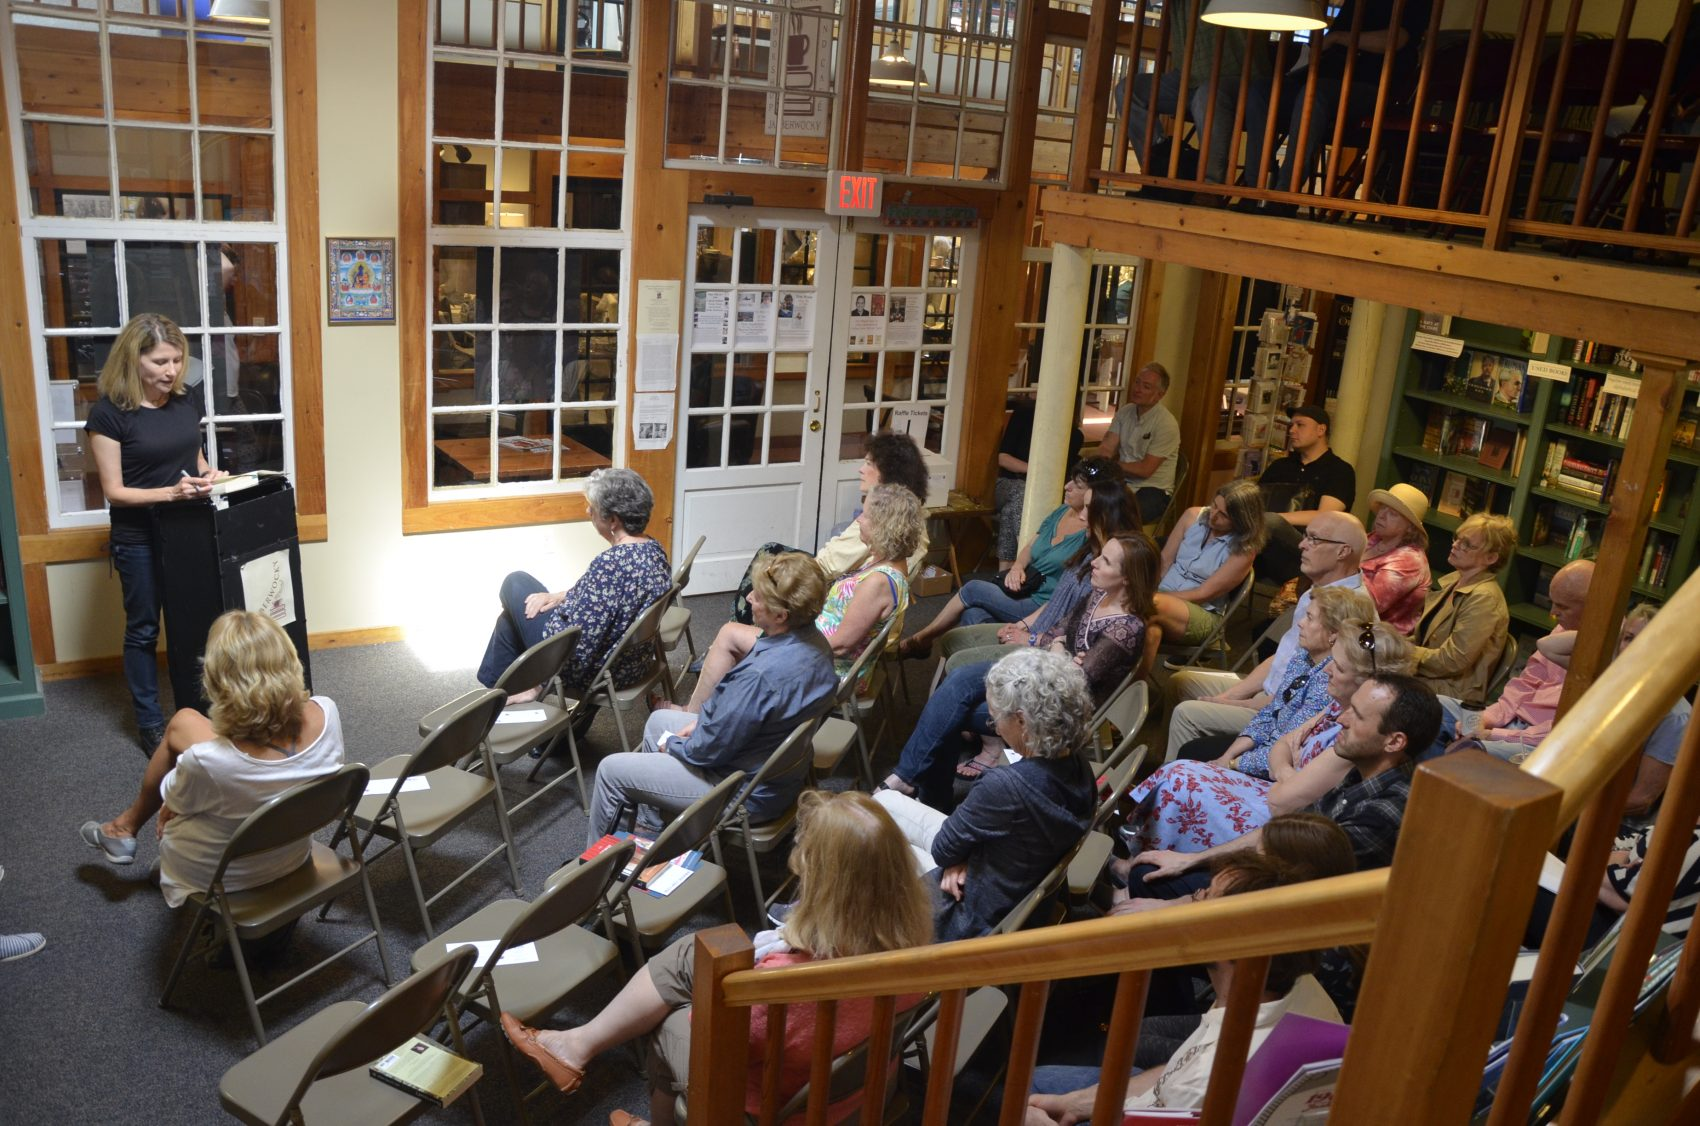 A reading at last year's Newburyport Literary Festival inside the Jabberwocky Bookshop. (Courtesy Jay McCarthy/Newburyport Literary Festival)